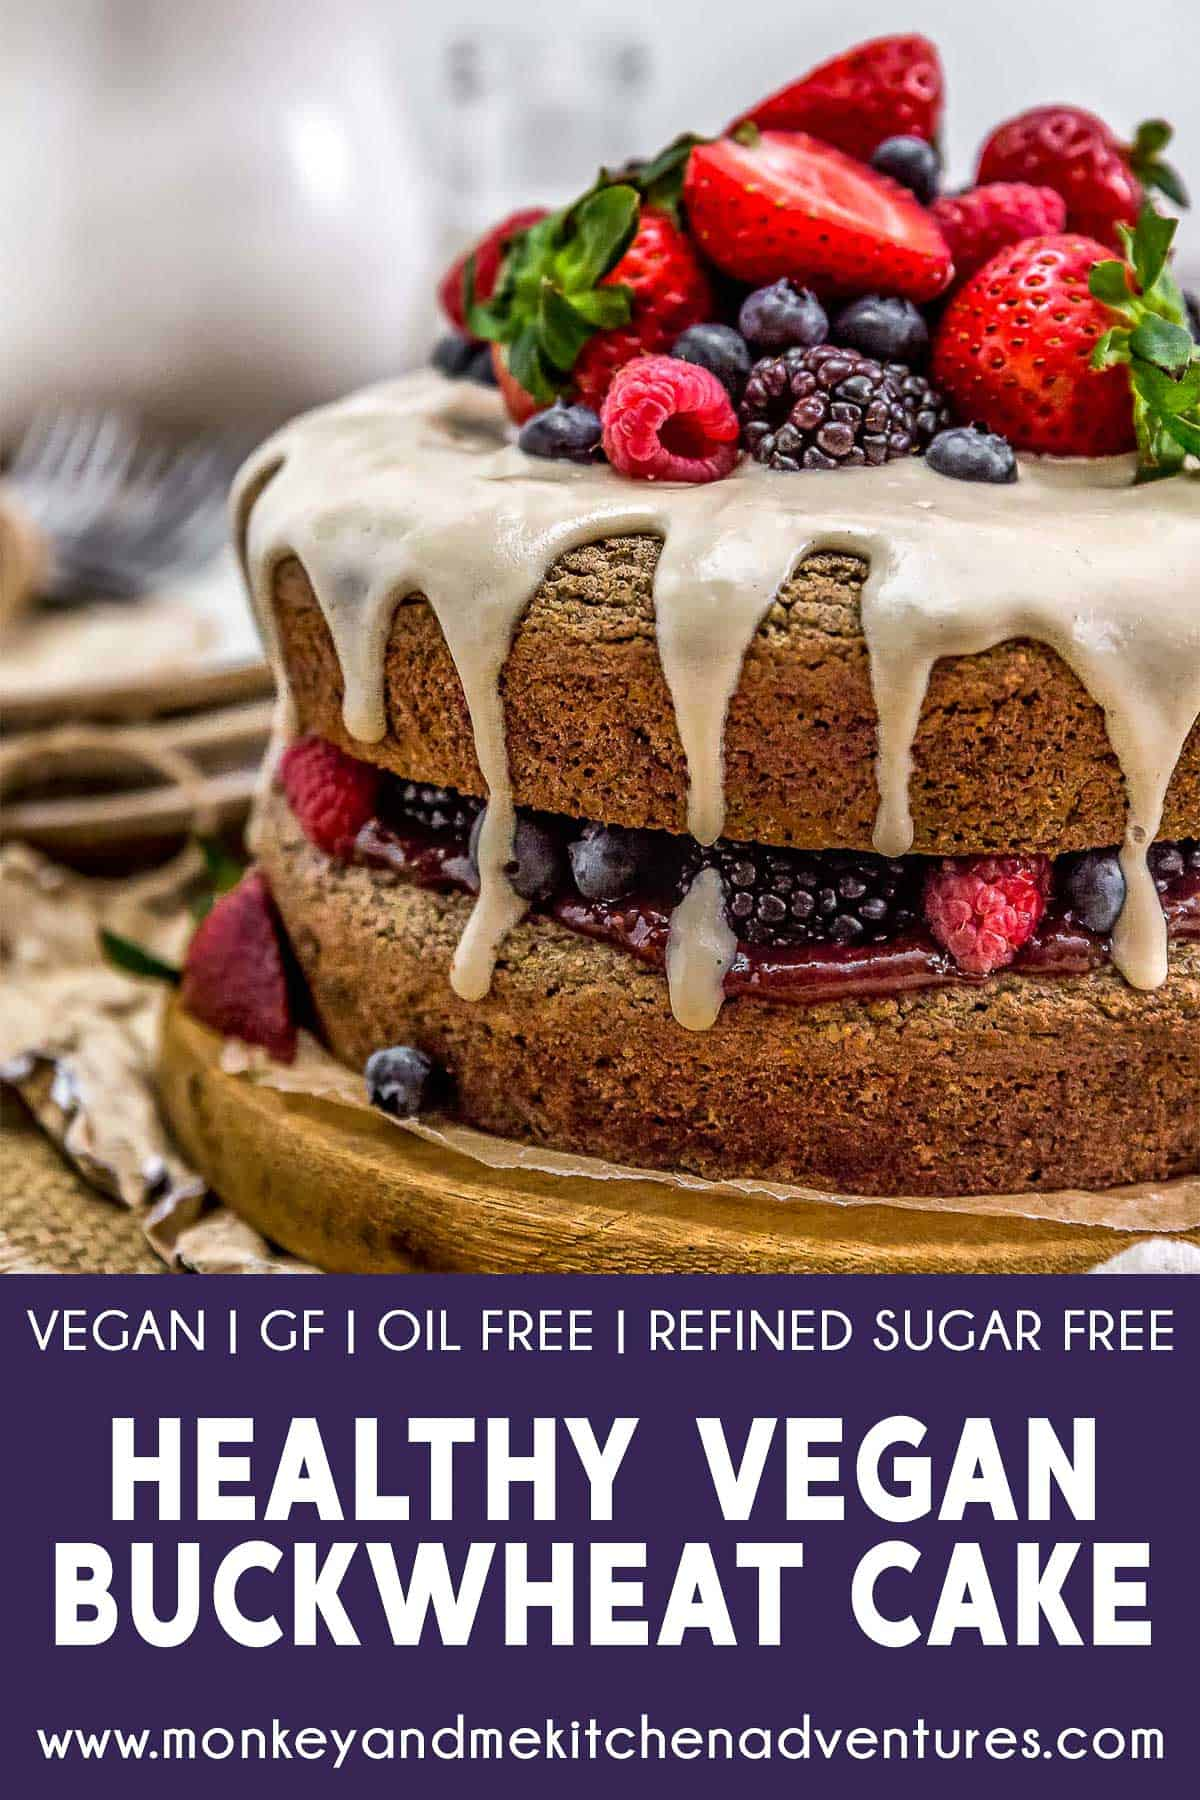 Healthy Vegan Buckwheat Cake with text description